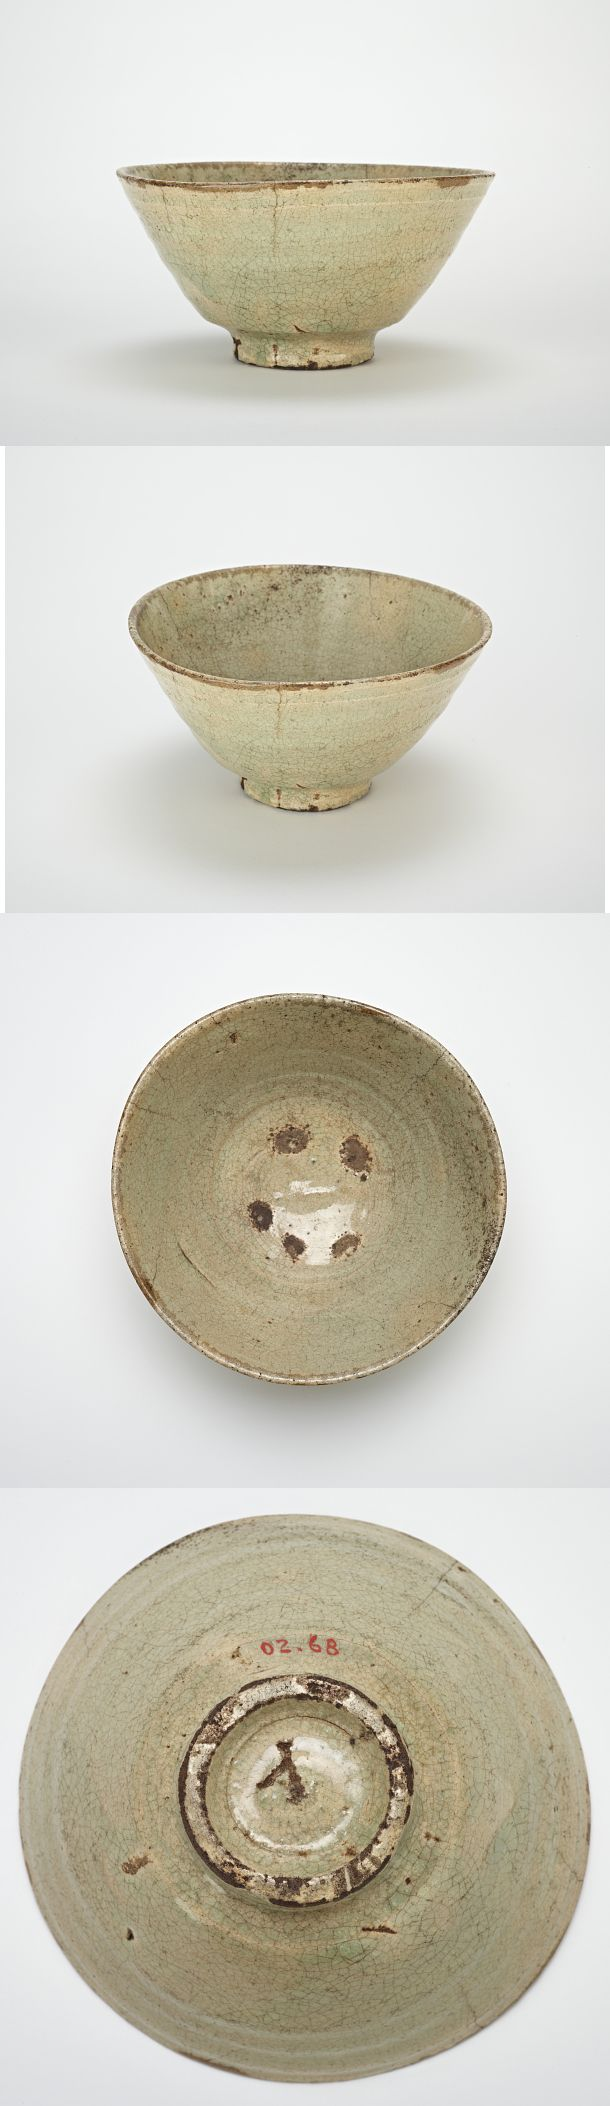 Tea bowl Joseon period, second half 16th century Porcelain with transparent, pale blue glaze Dimension(s) H x W: 8 x 16 cm (3 1/8 x 6 5/16 in) Korea, Western Gyeongsangnam-do province, Jinju